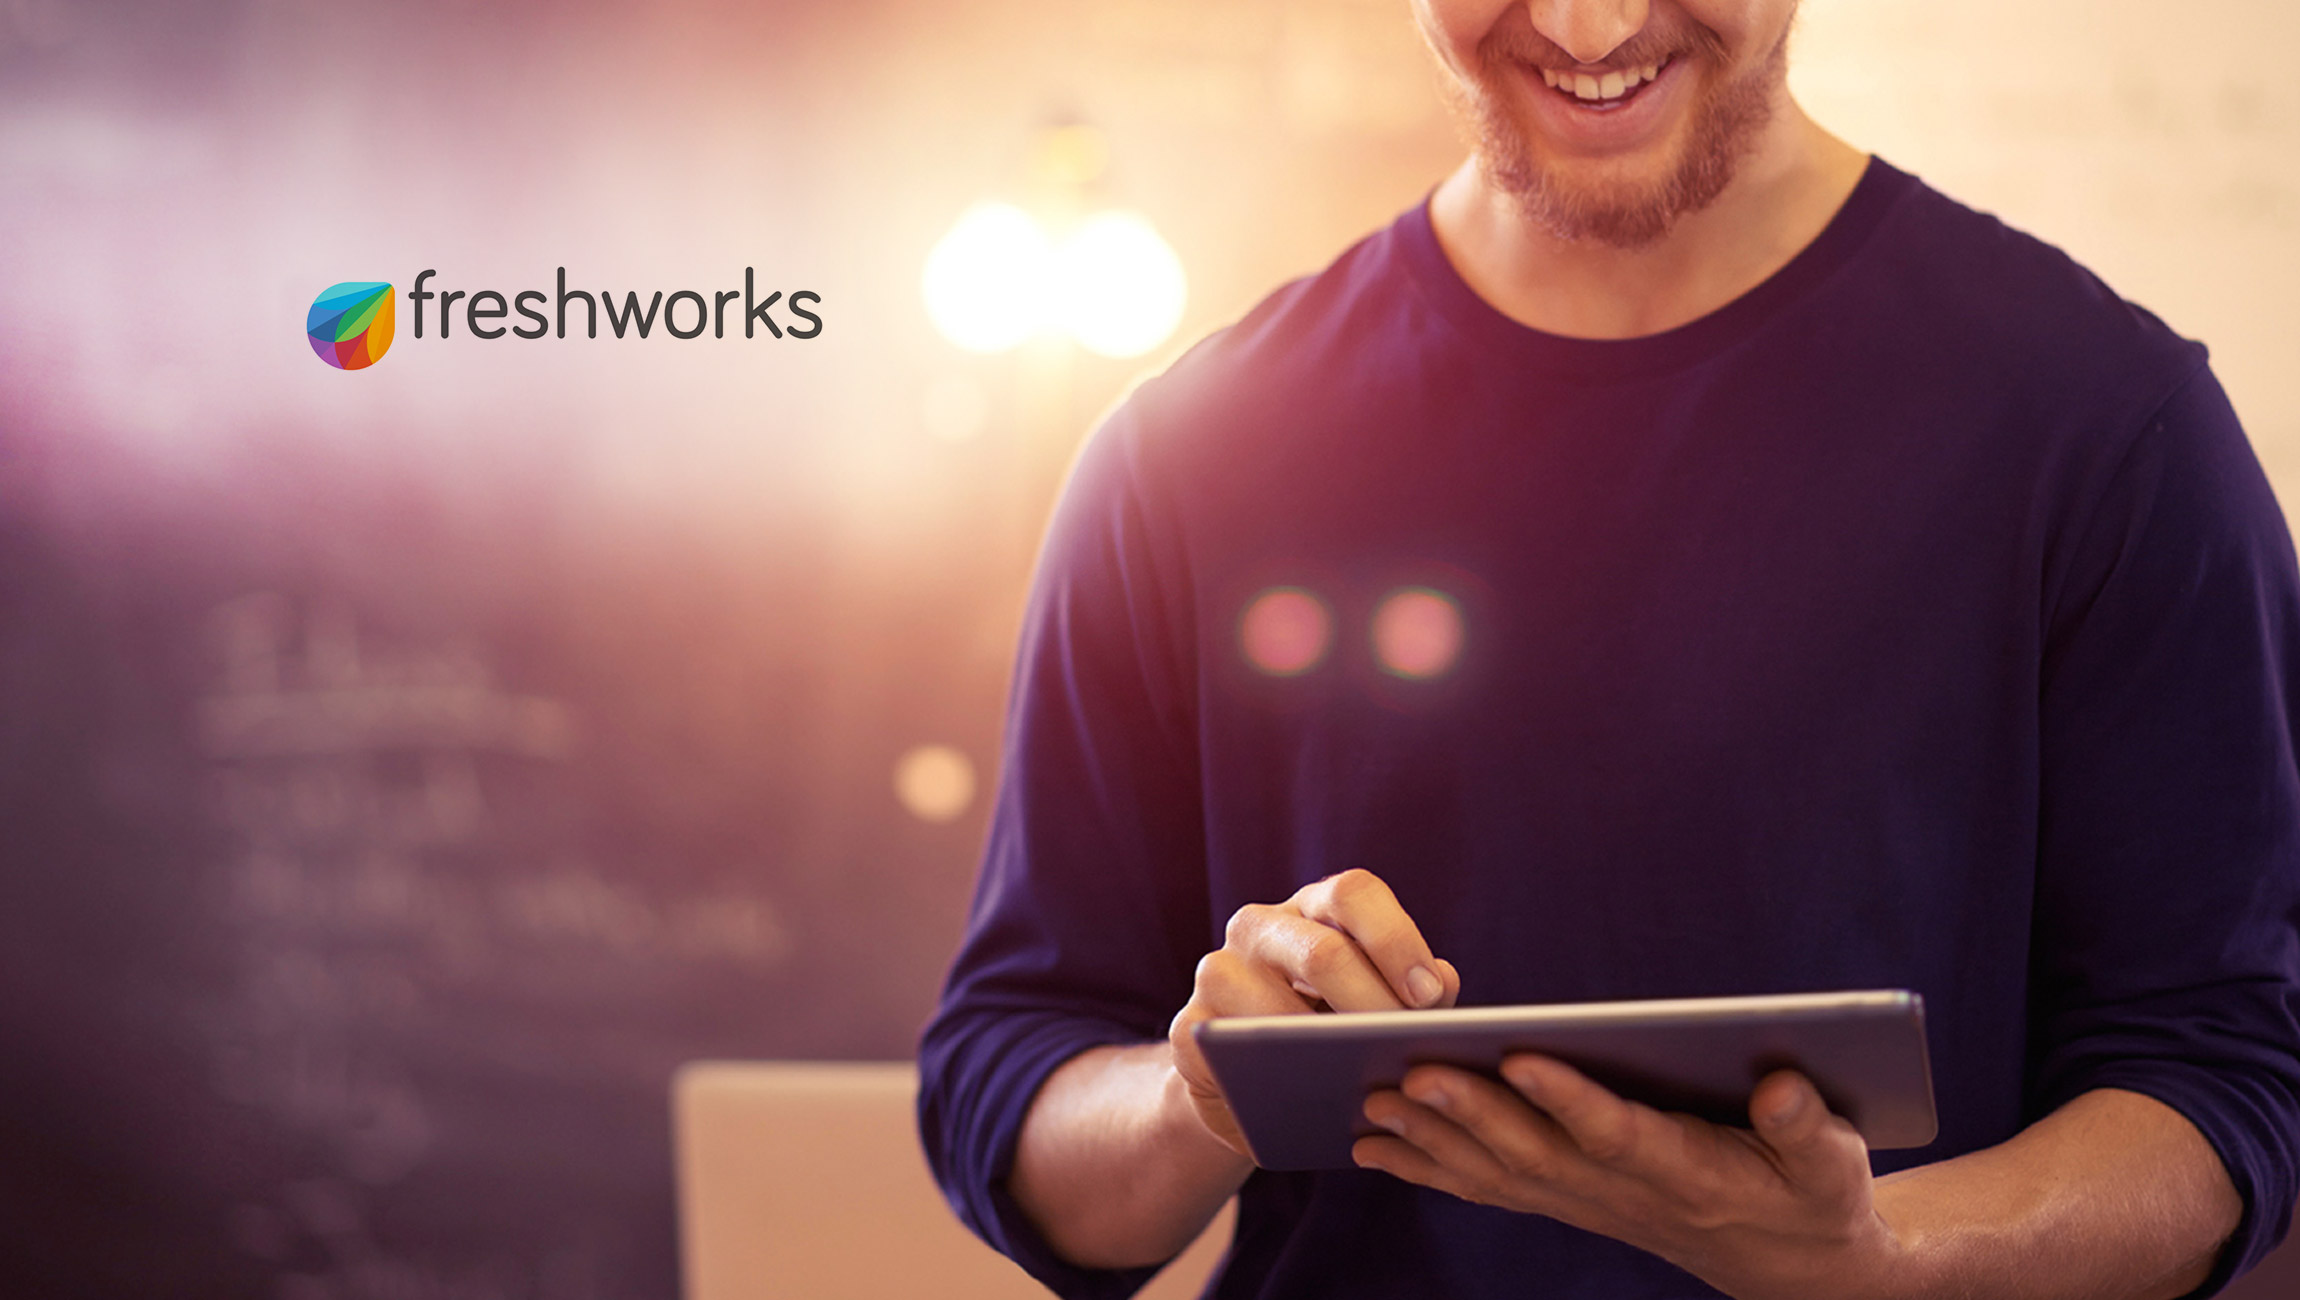 Freshworks Acquires Natero, a Leader in Customer Success Cloud Software